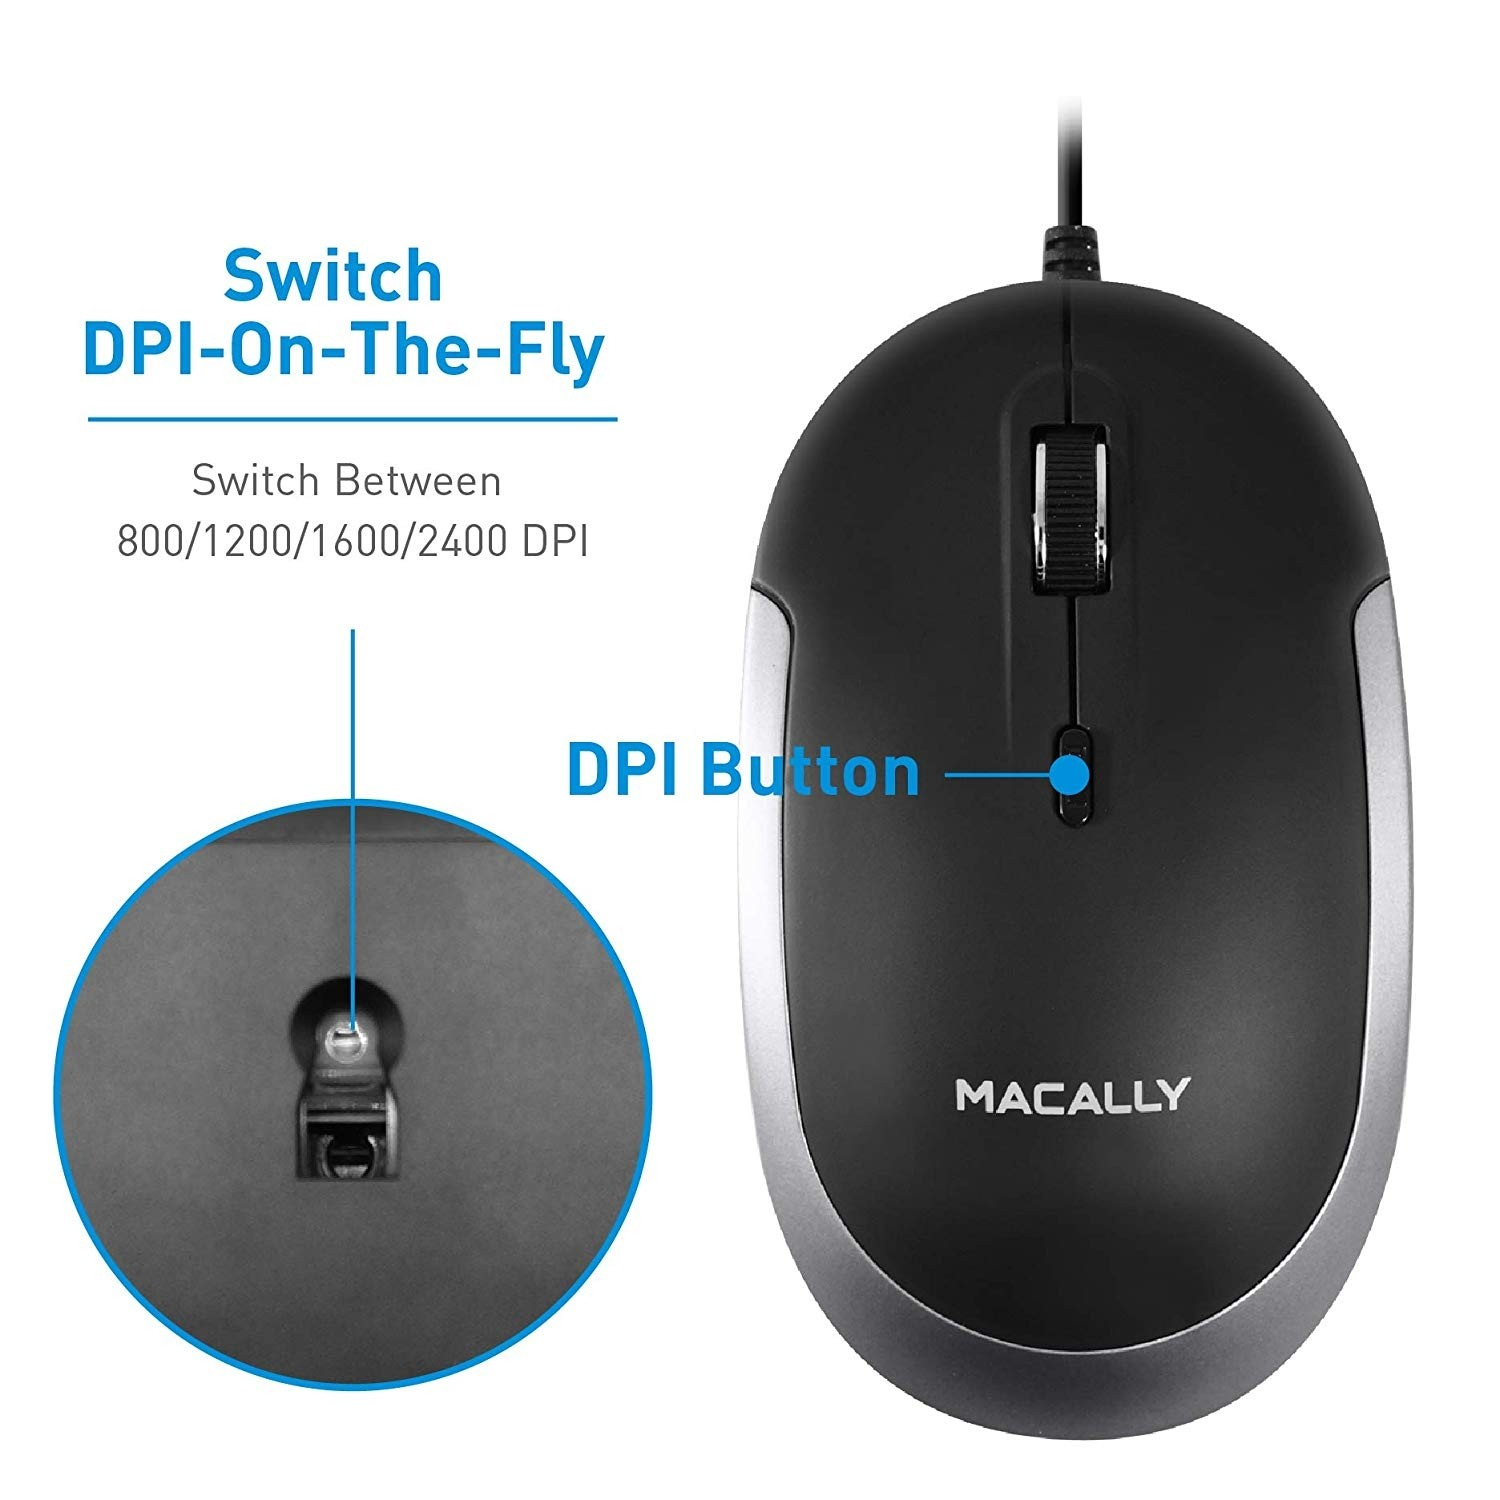 Macally Silent USB Type C Mouse Wired for Apple Mac, Slim & Compact Mice Design & Optical Sensor & DPI Switch 800/1200/1600/2400, Small for Easy Travel - Black, UCDYNAMOUSESG